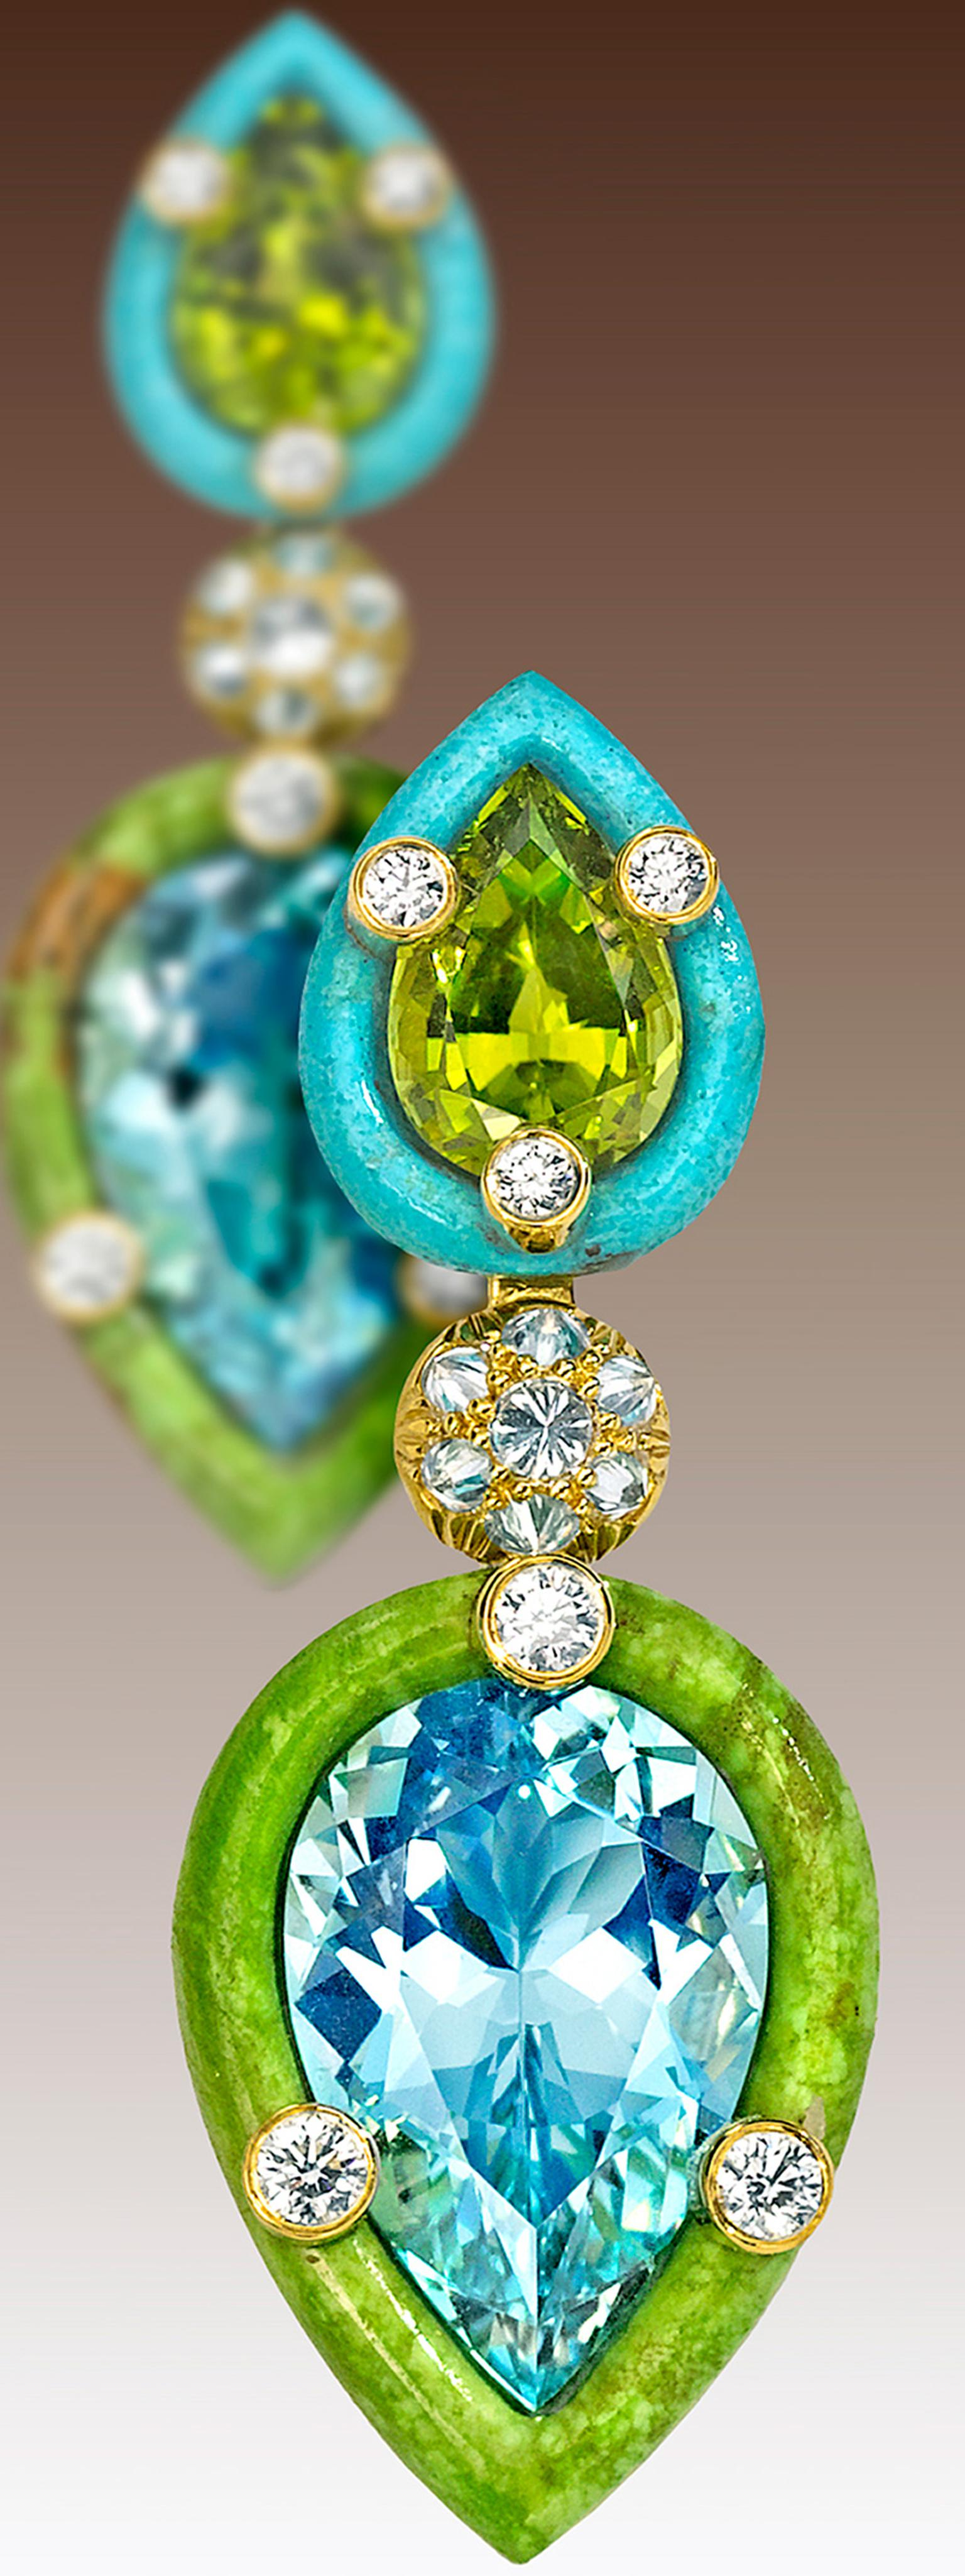 Nicholas Varney 2013 'Duo' Style earrings featuring two pear-shape aquamarines retained by hand-carved gaspeite and paired with two pear-shaped peridots retained by hand-carved turquoise and joined by yellow gold and diamonds.